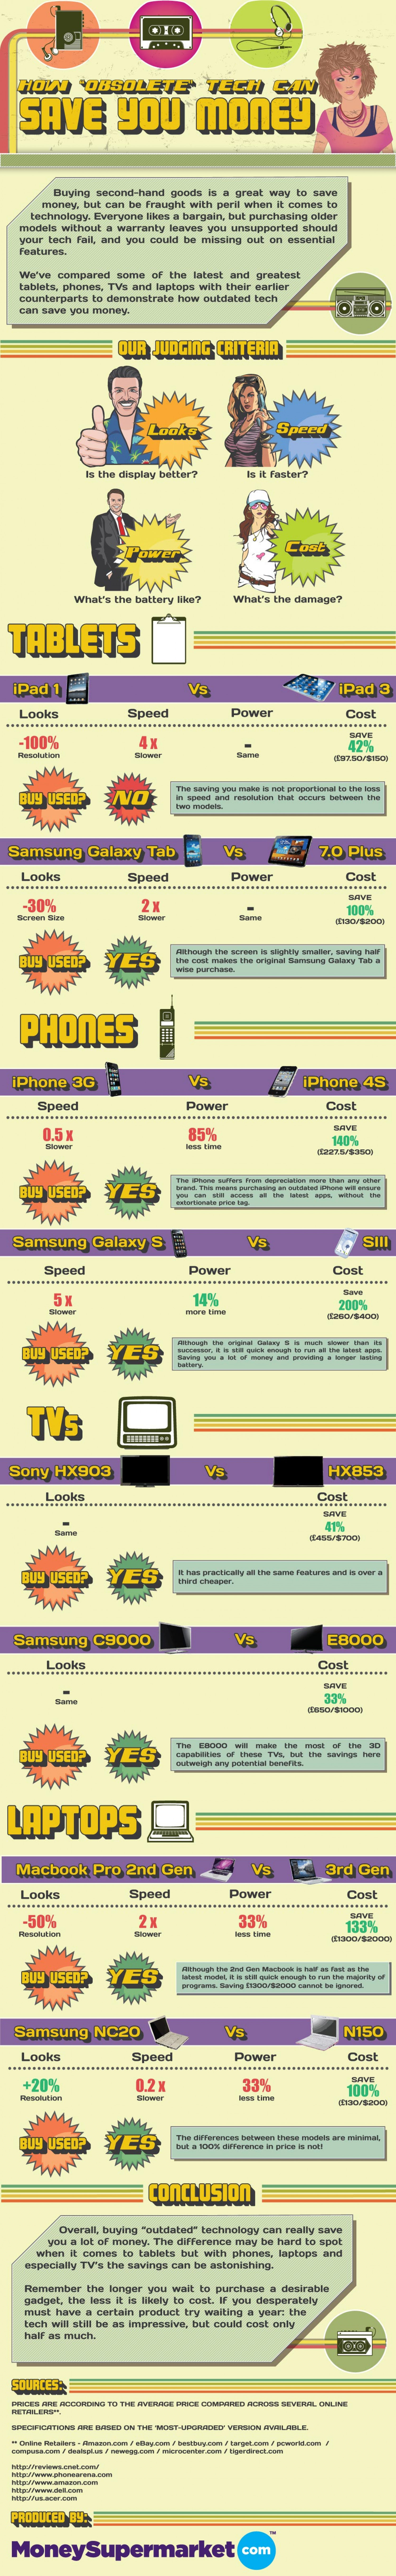 How Obsolete Technology Can Save You Money Infographic